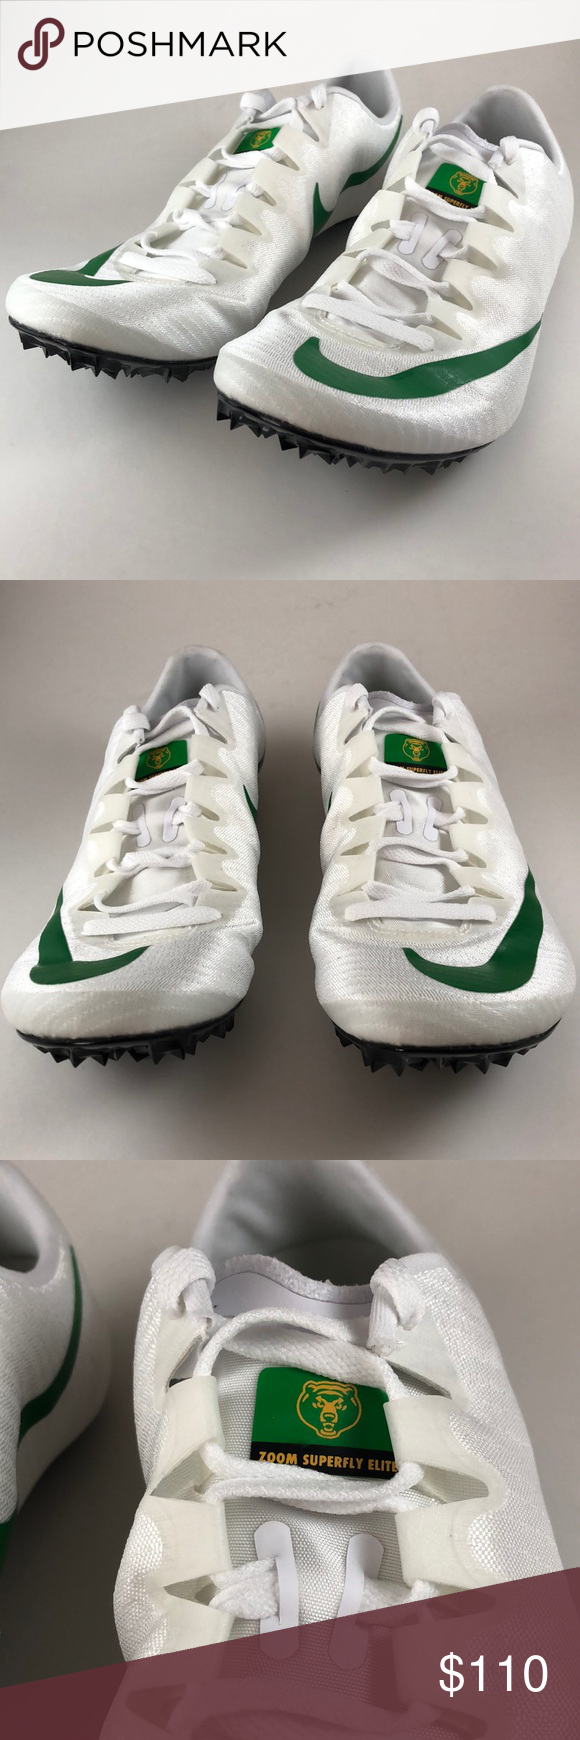 Nike Zoom Superfly Elite Baylor Bears Show love to your